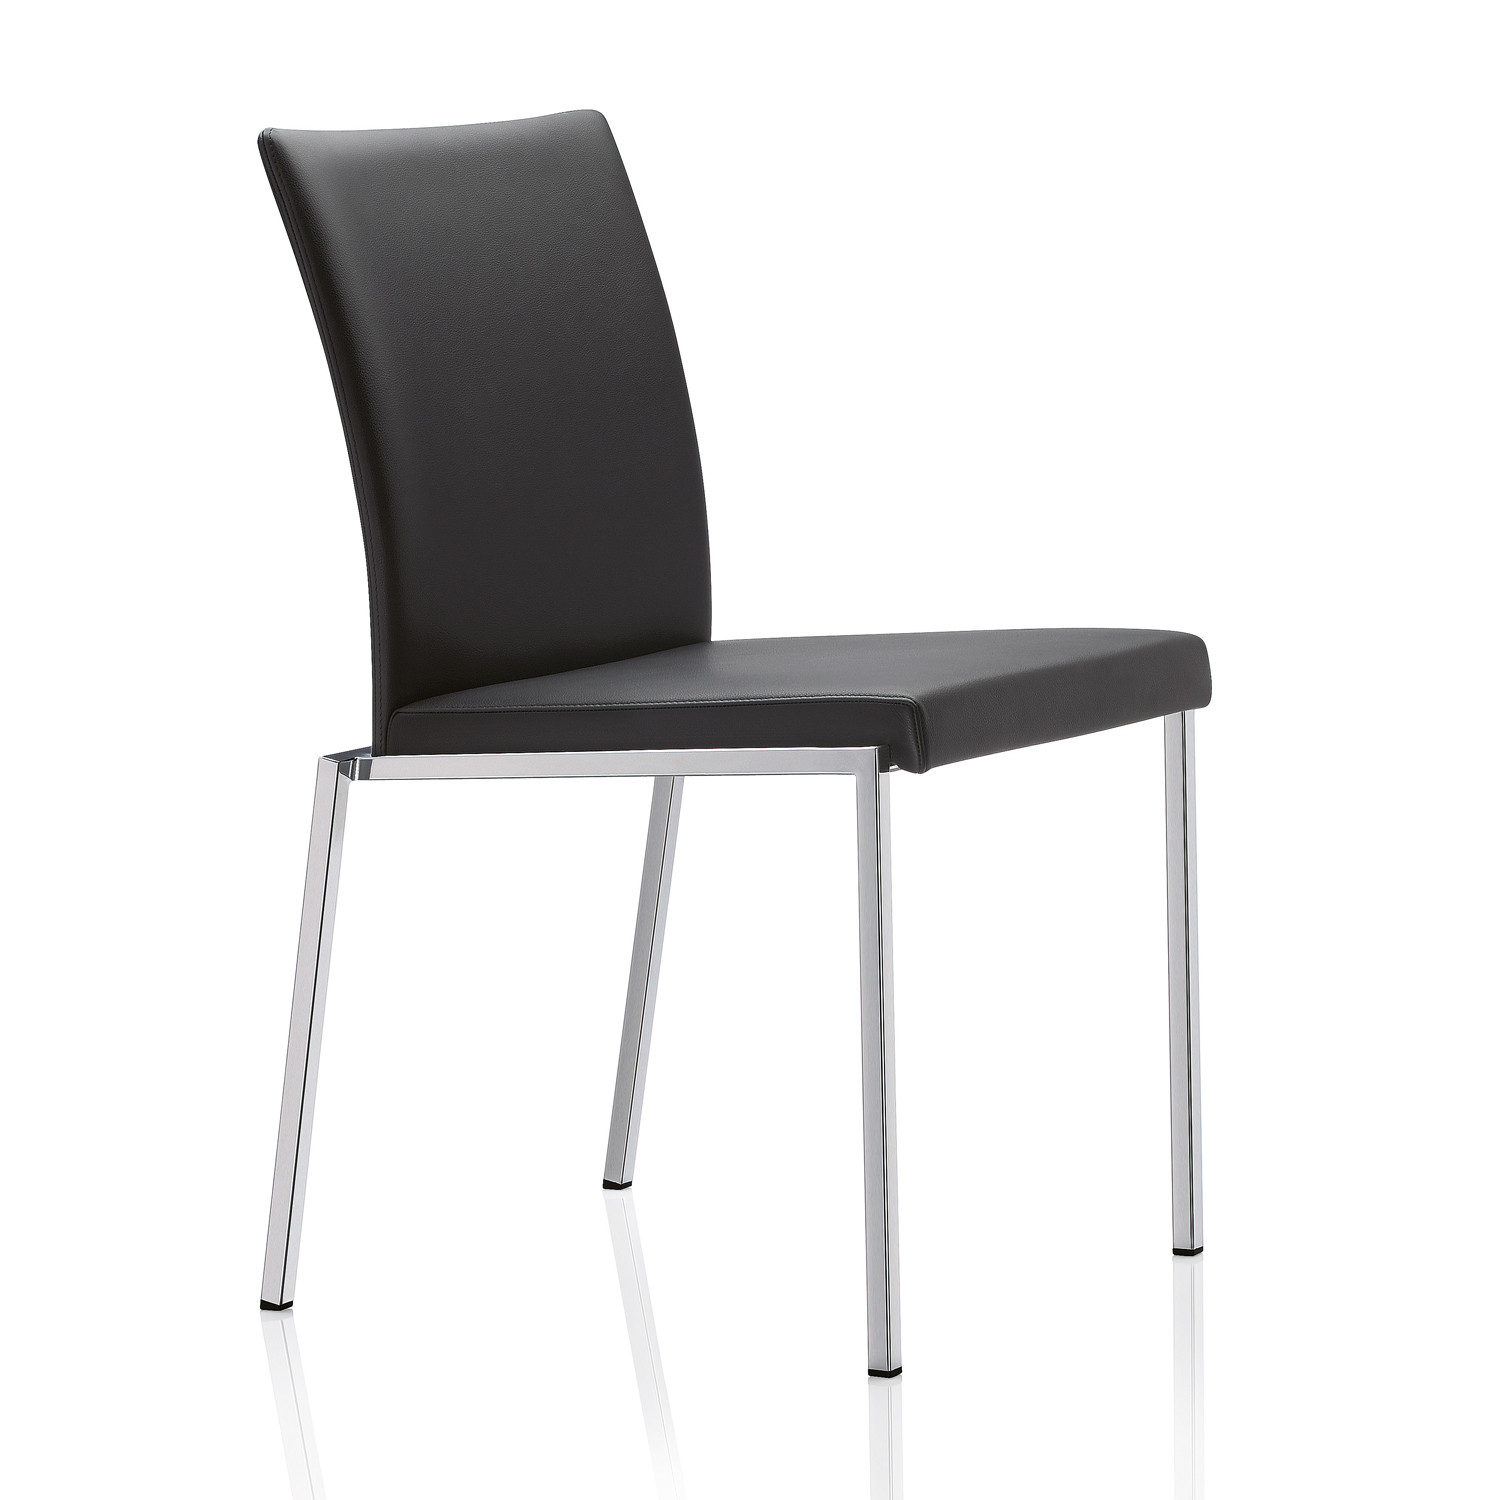 MilanoClassic Fully Upholstered Chair